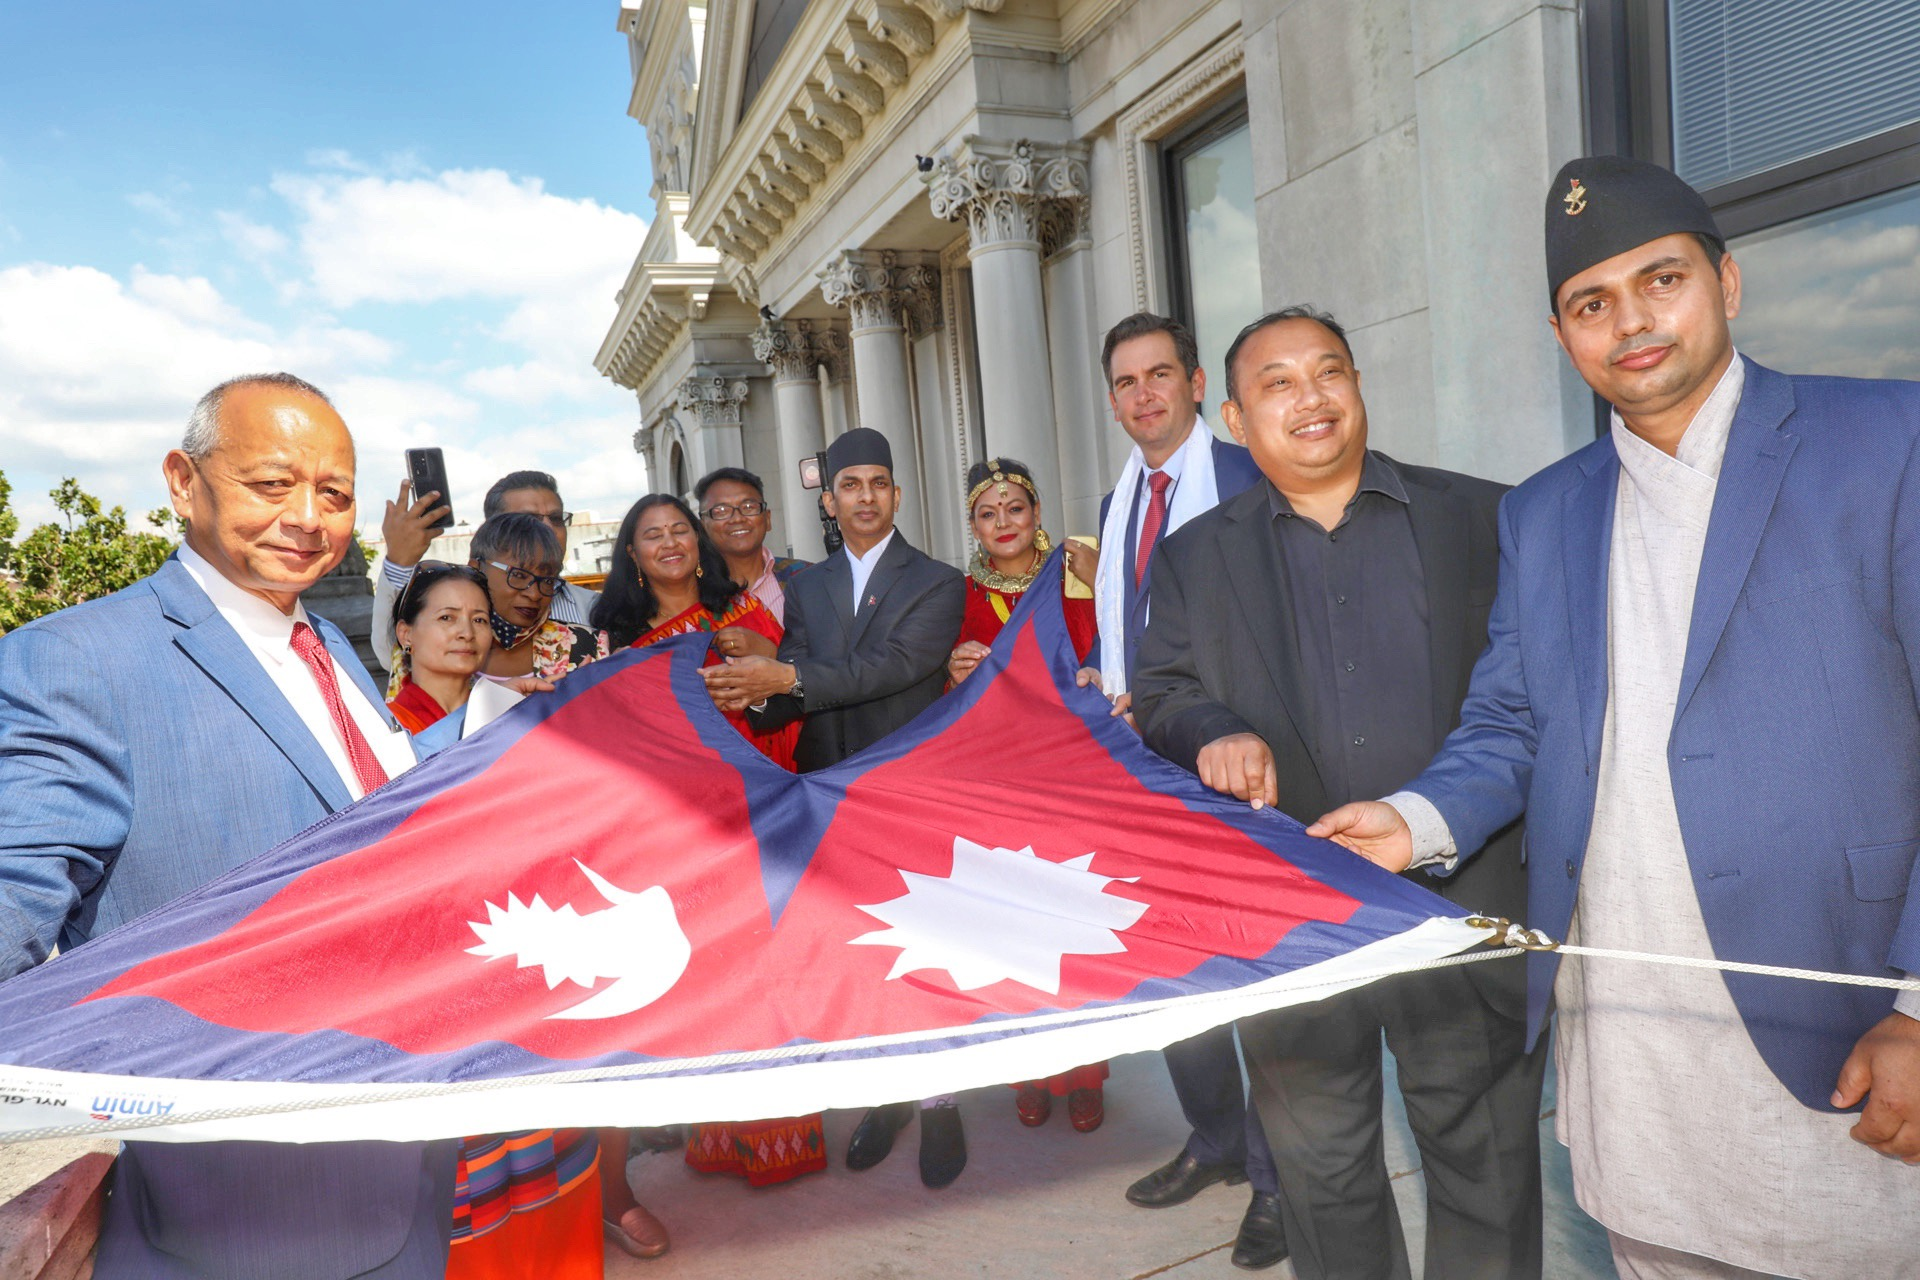 Several citizens are pictured holding the flag before it is raised The national flag of Nepal is a simplified combination of two single pennants. Its crimson red is the color of the rhododendron, the country's national flower. Red is also the sign of victory in war.